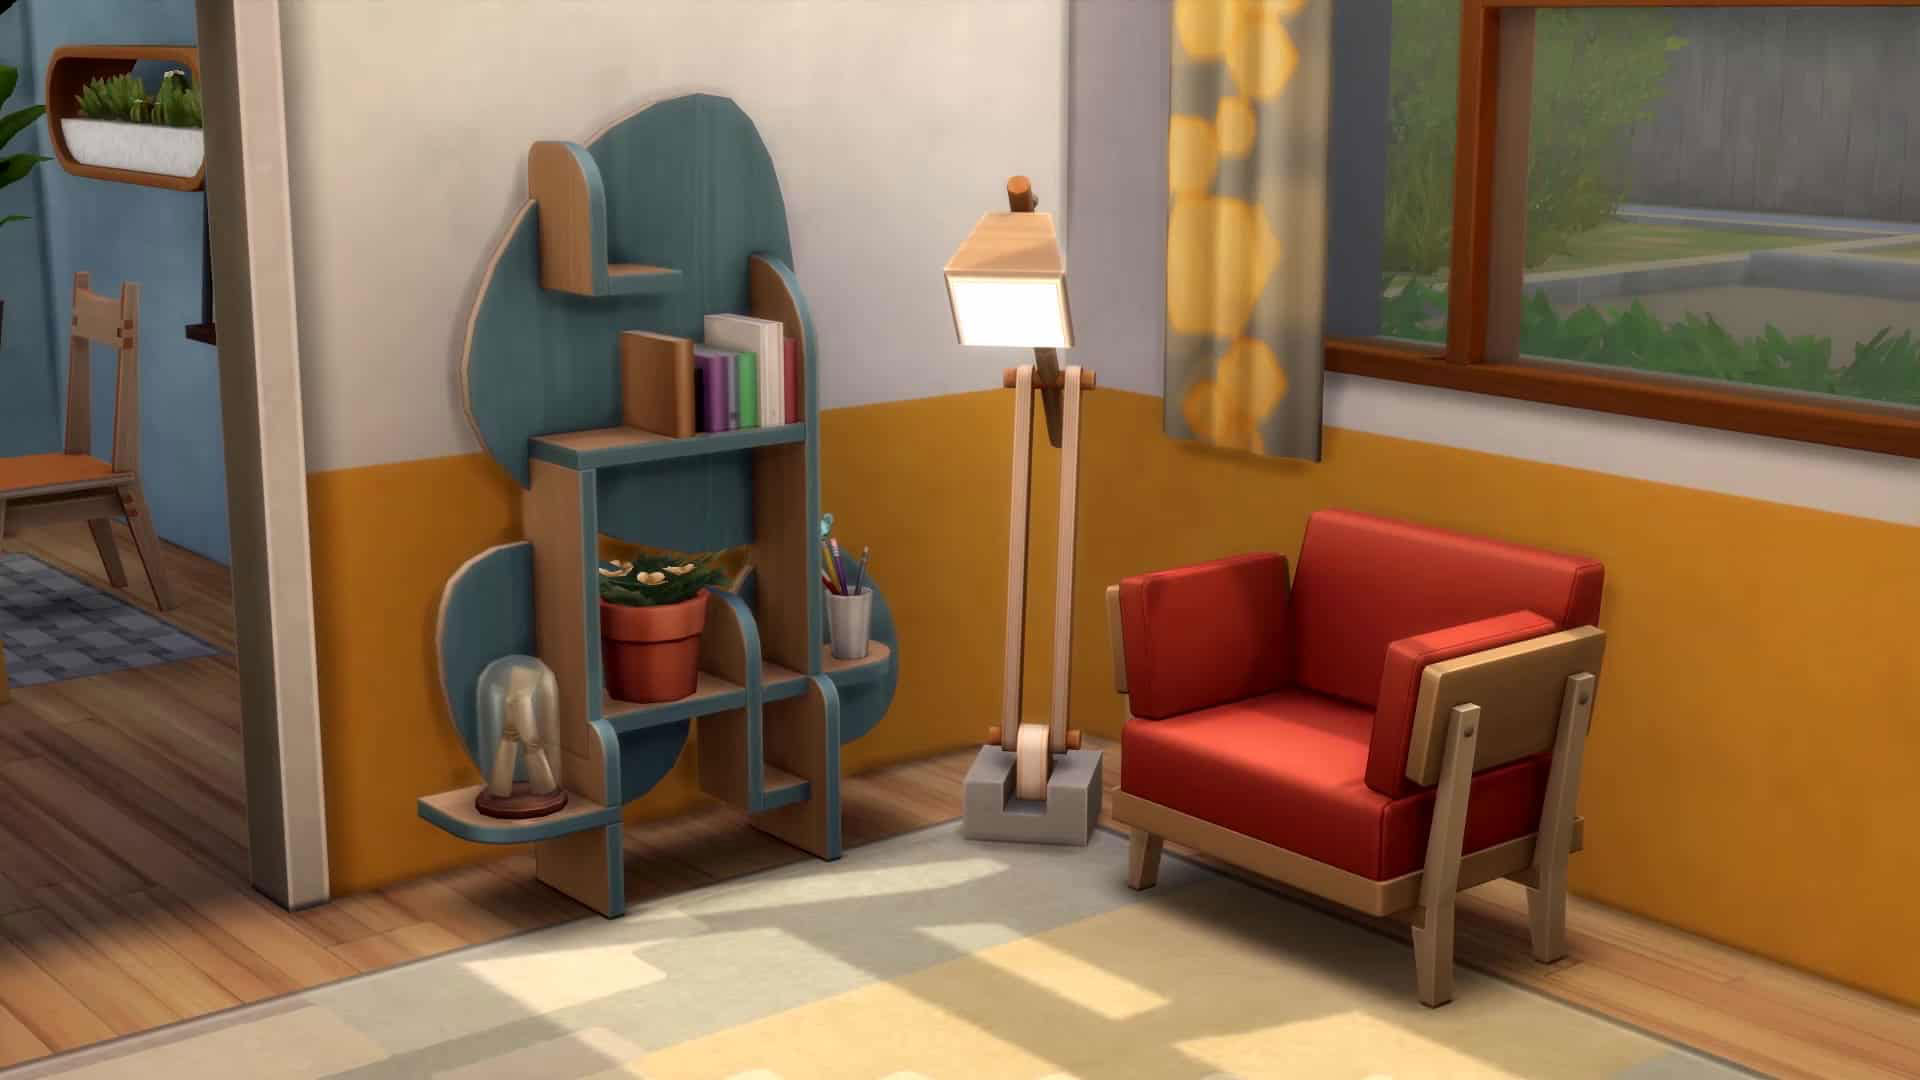 Recycle Furniture in Sims 4 Eco Lifestyle